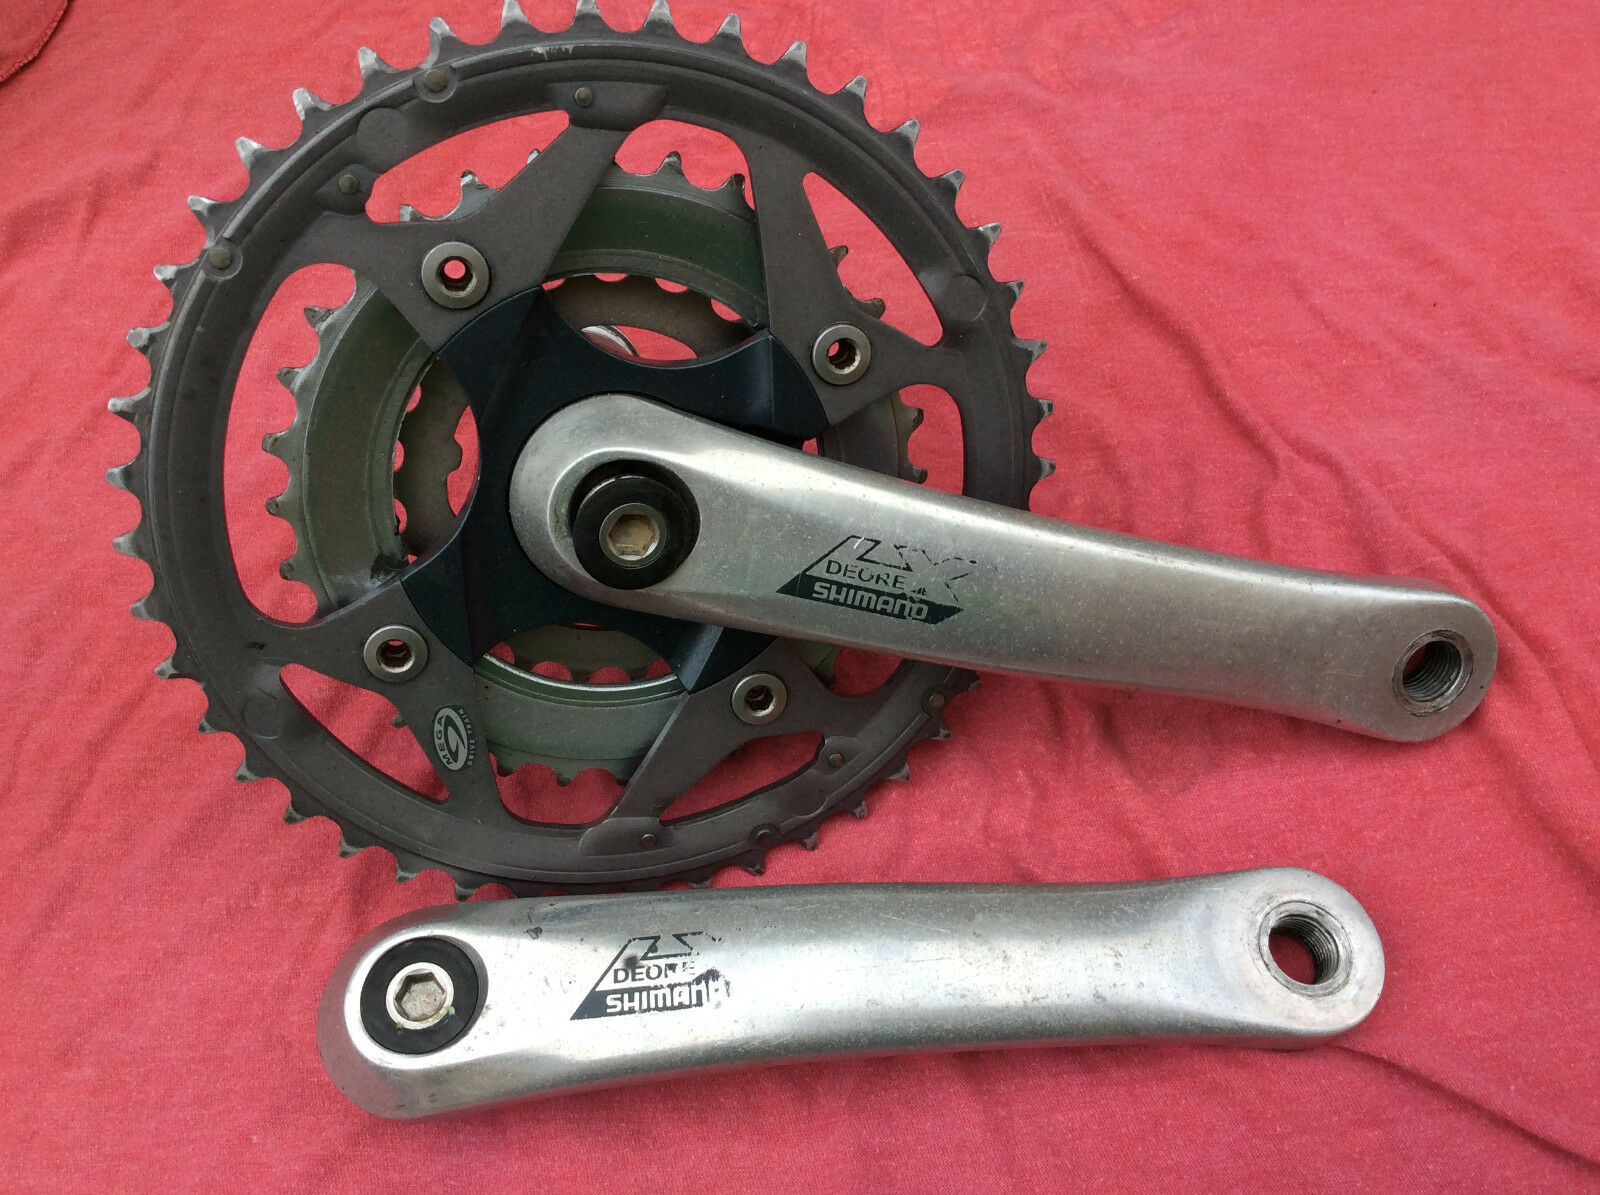 SHIMANO DEORE LX BICYCLE 170mm 44 32 22 TOOTH CRANKSET FC-M570 in good condition